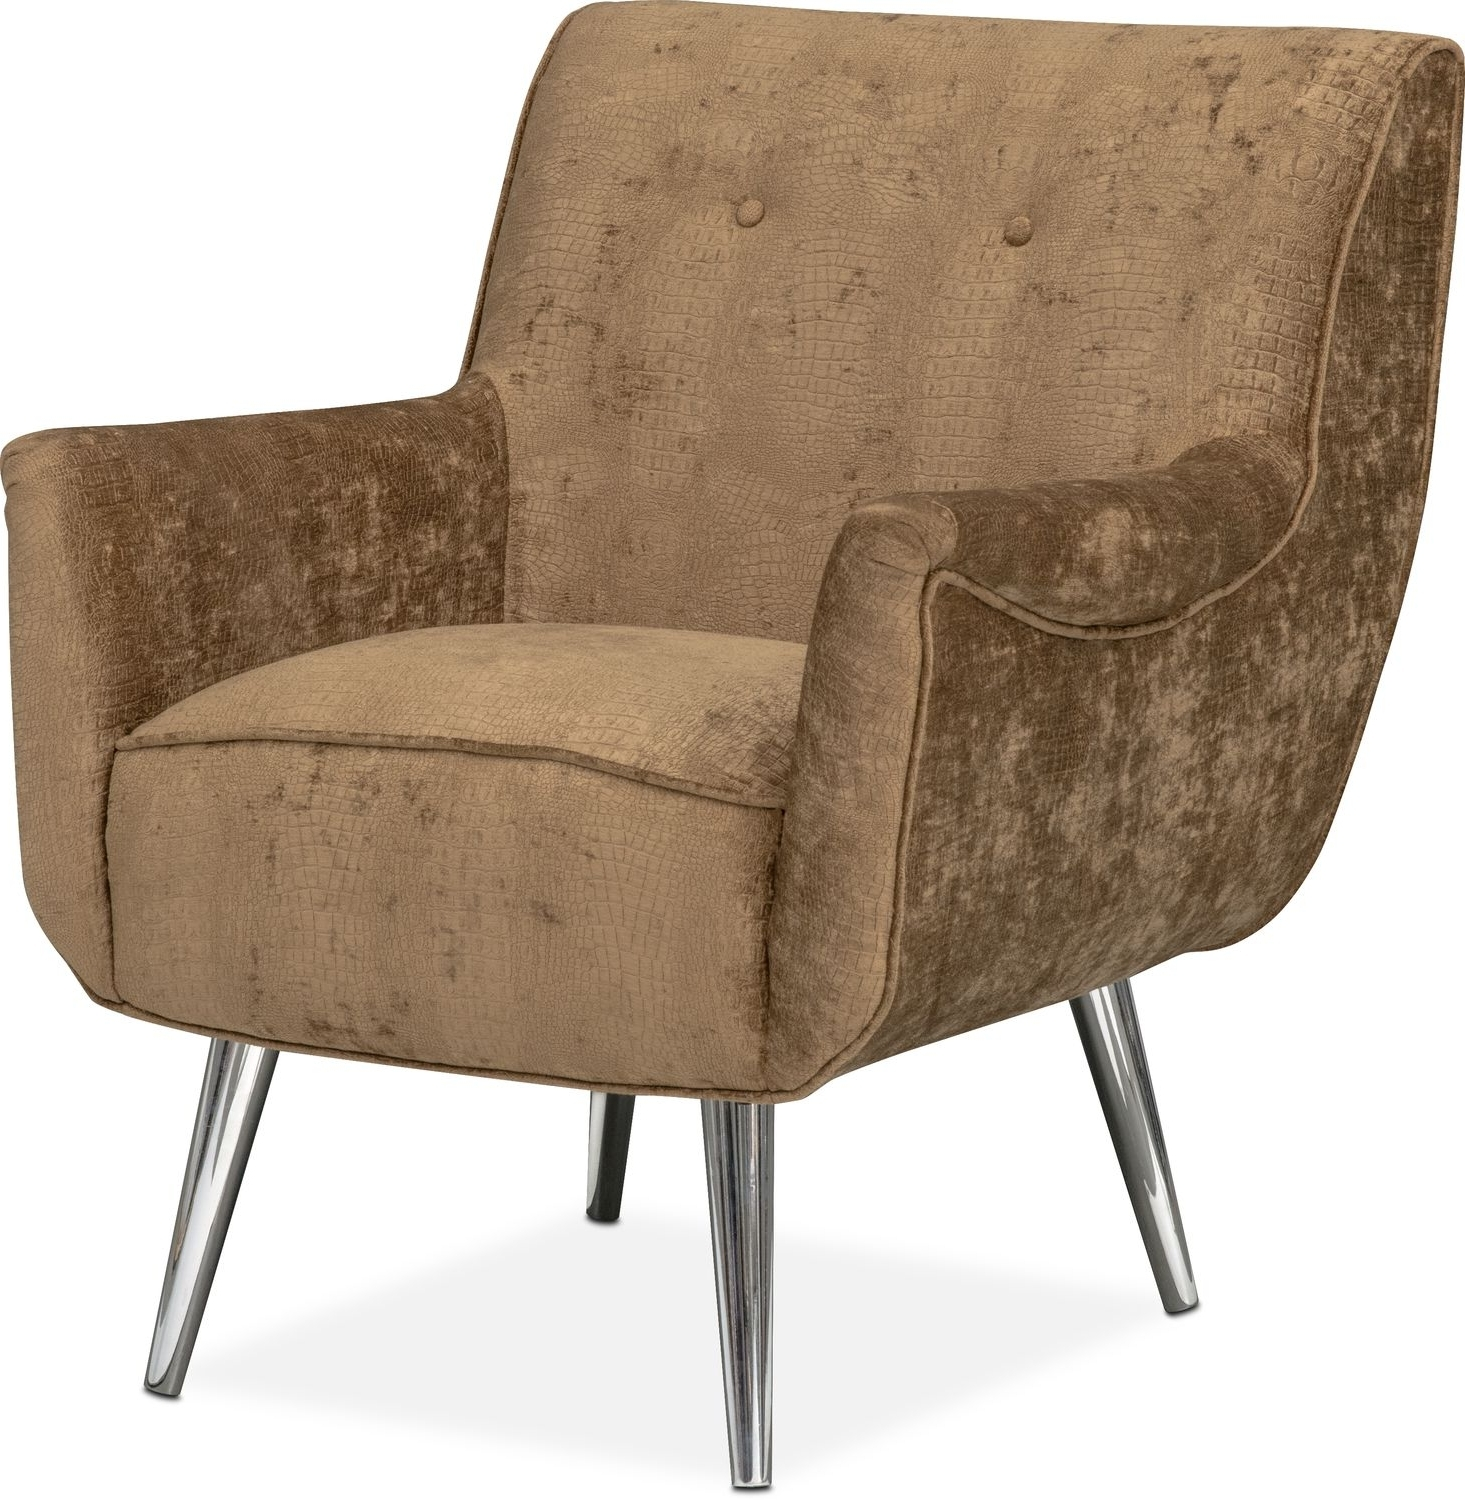 Most Recent Moda Accent Chair – Caramel (View 14 of 15)